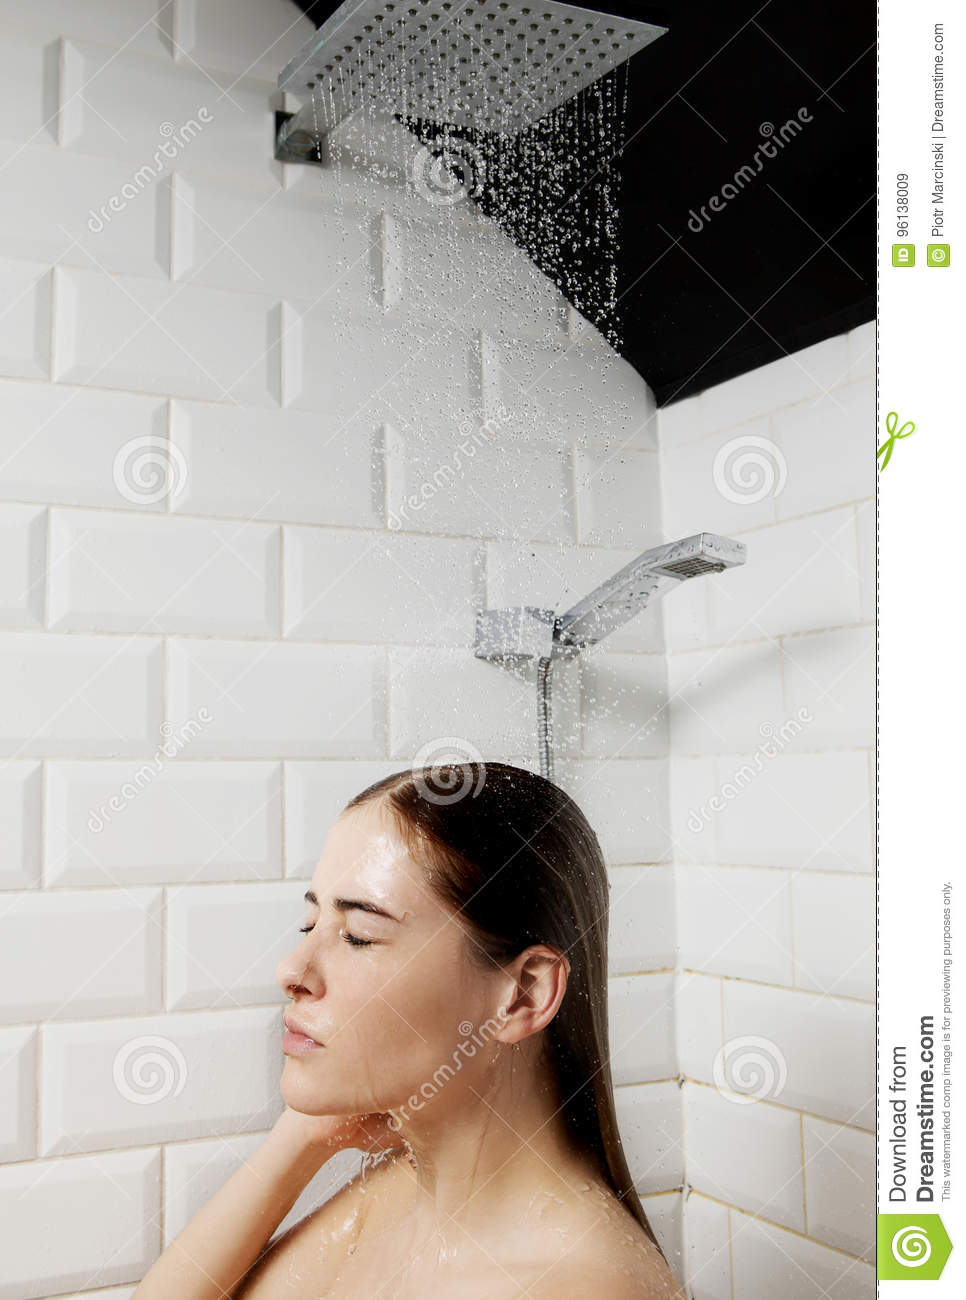 Feet females taking a shower with clothes on race teens